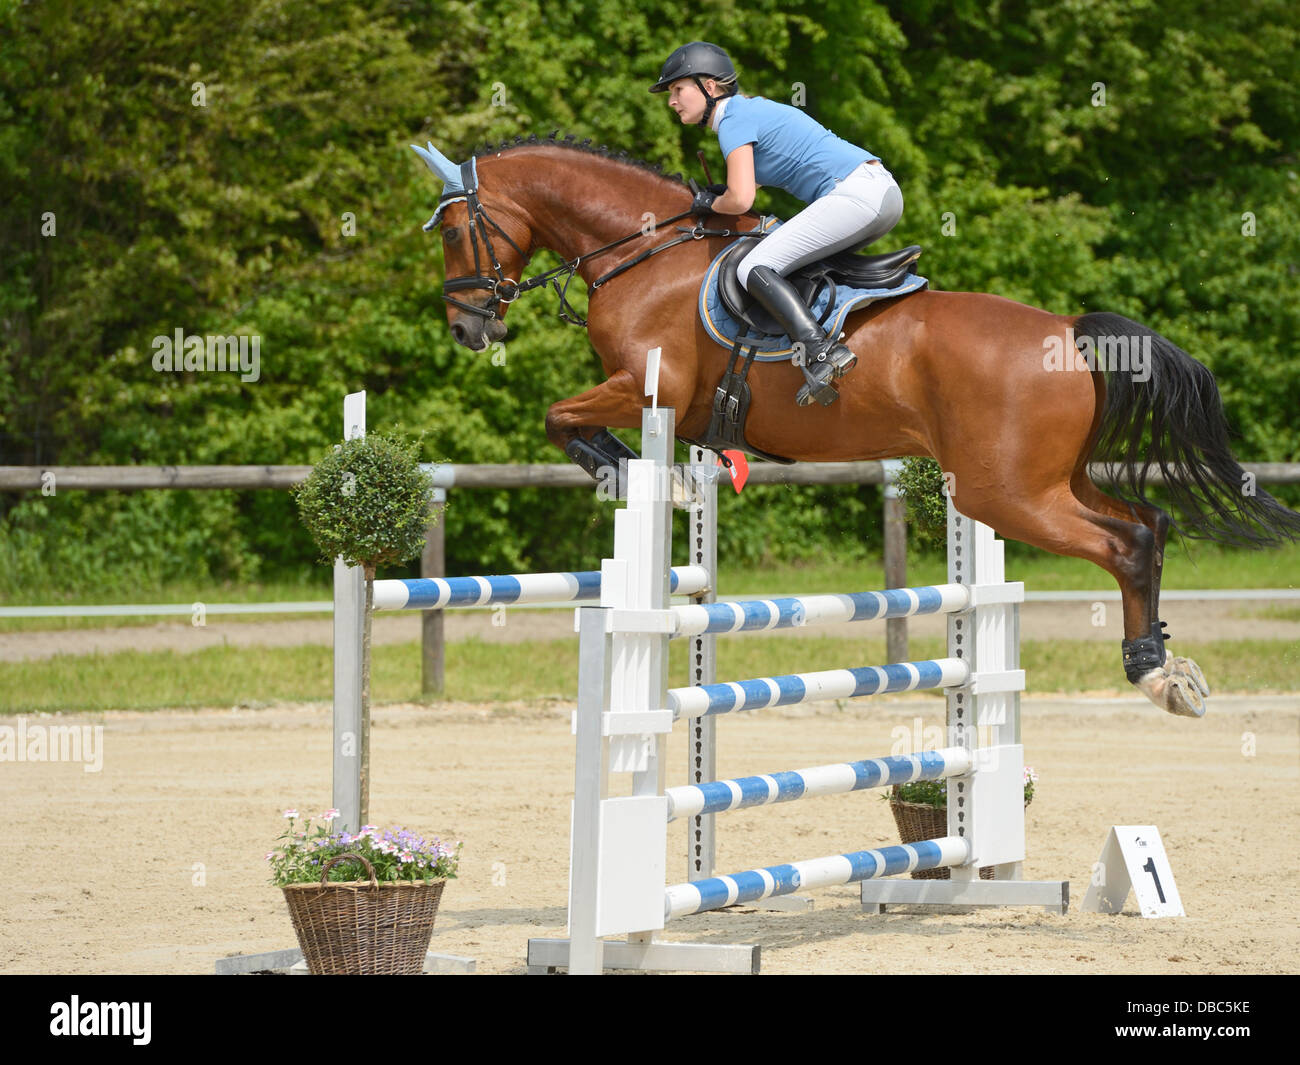 Show Jumping Oxer High Resolution Stock Photography And Images Alamy